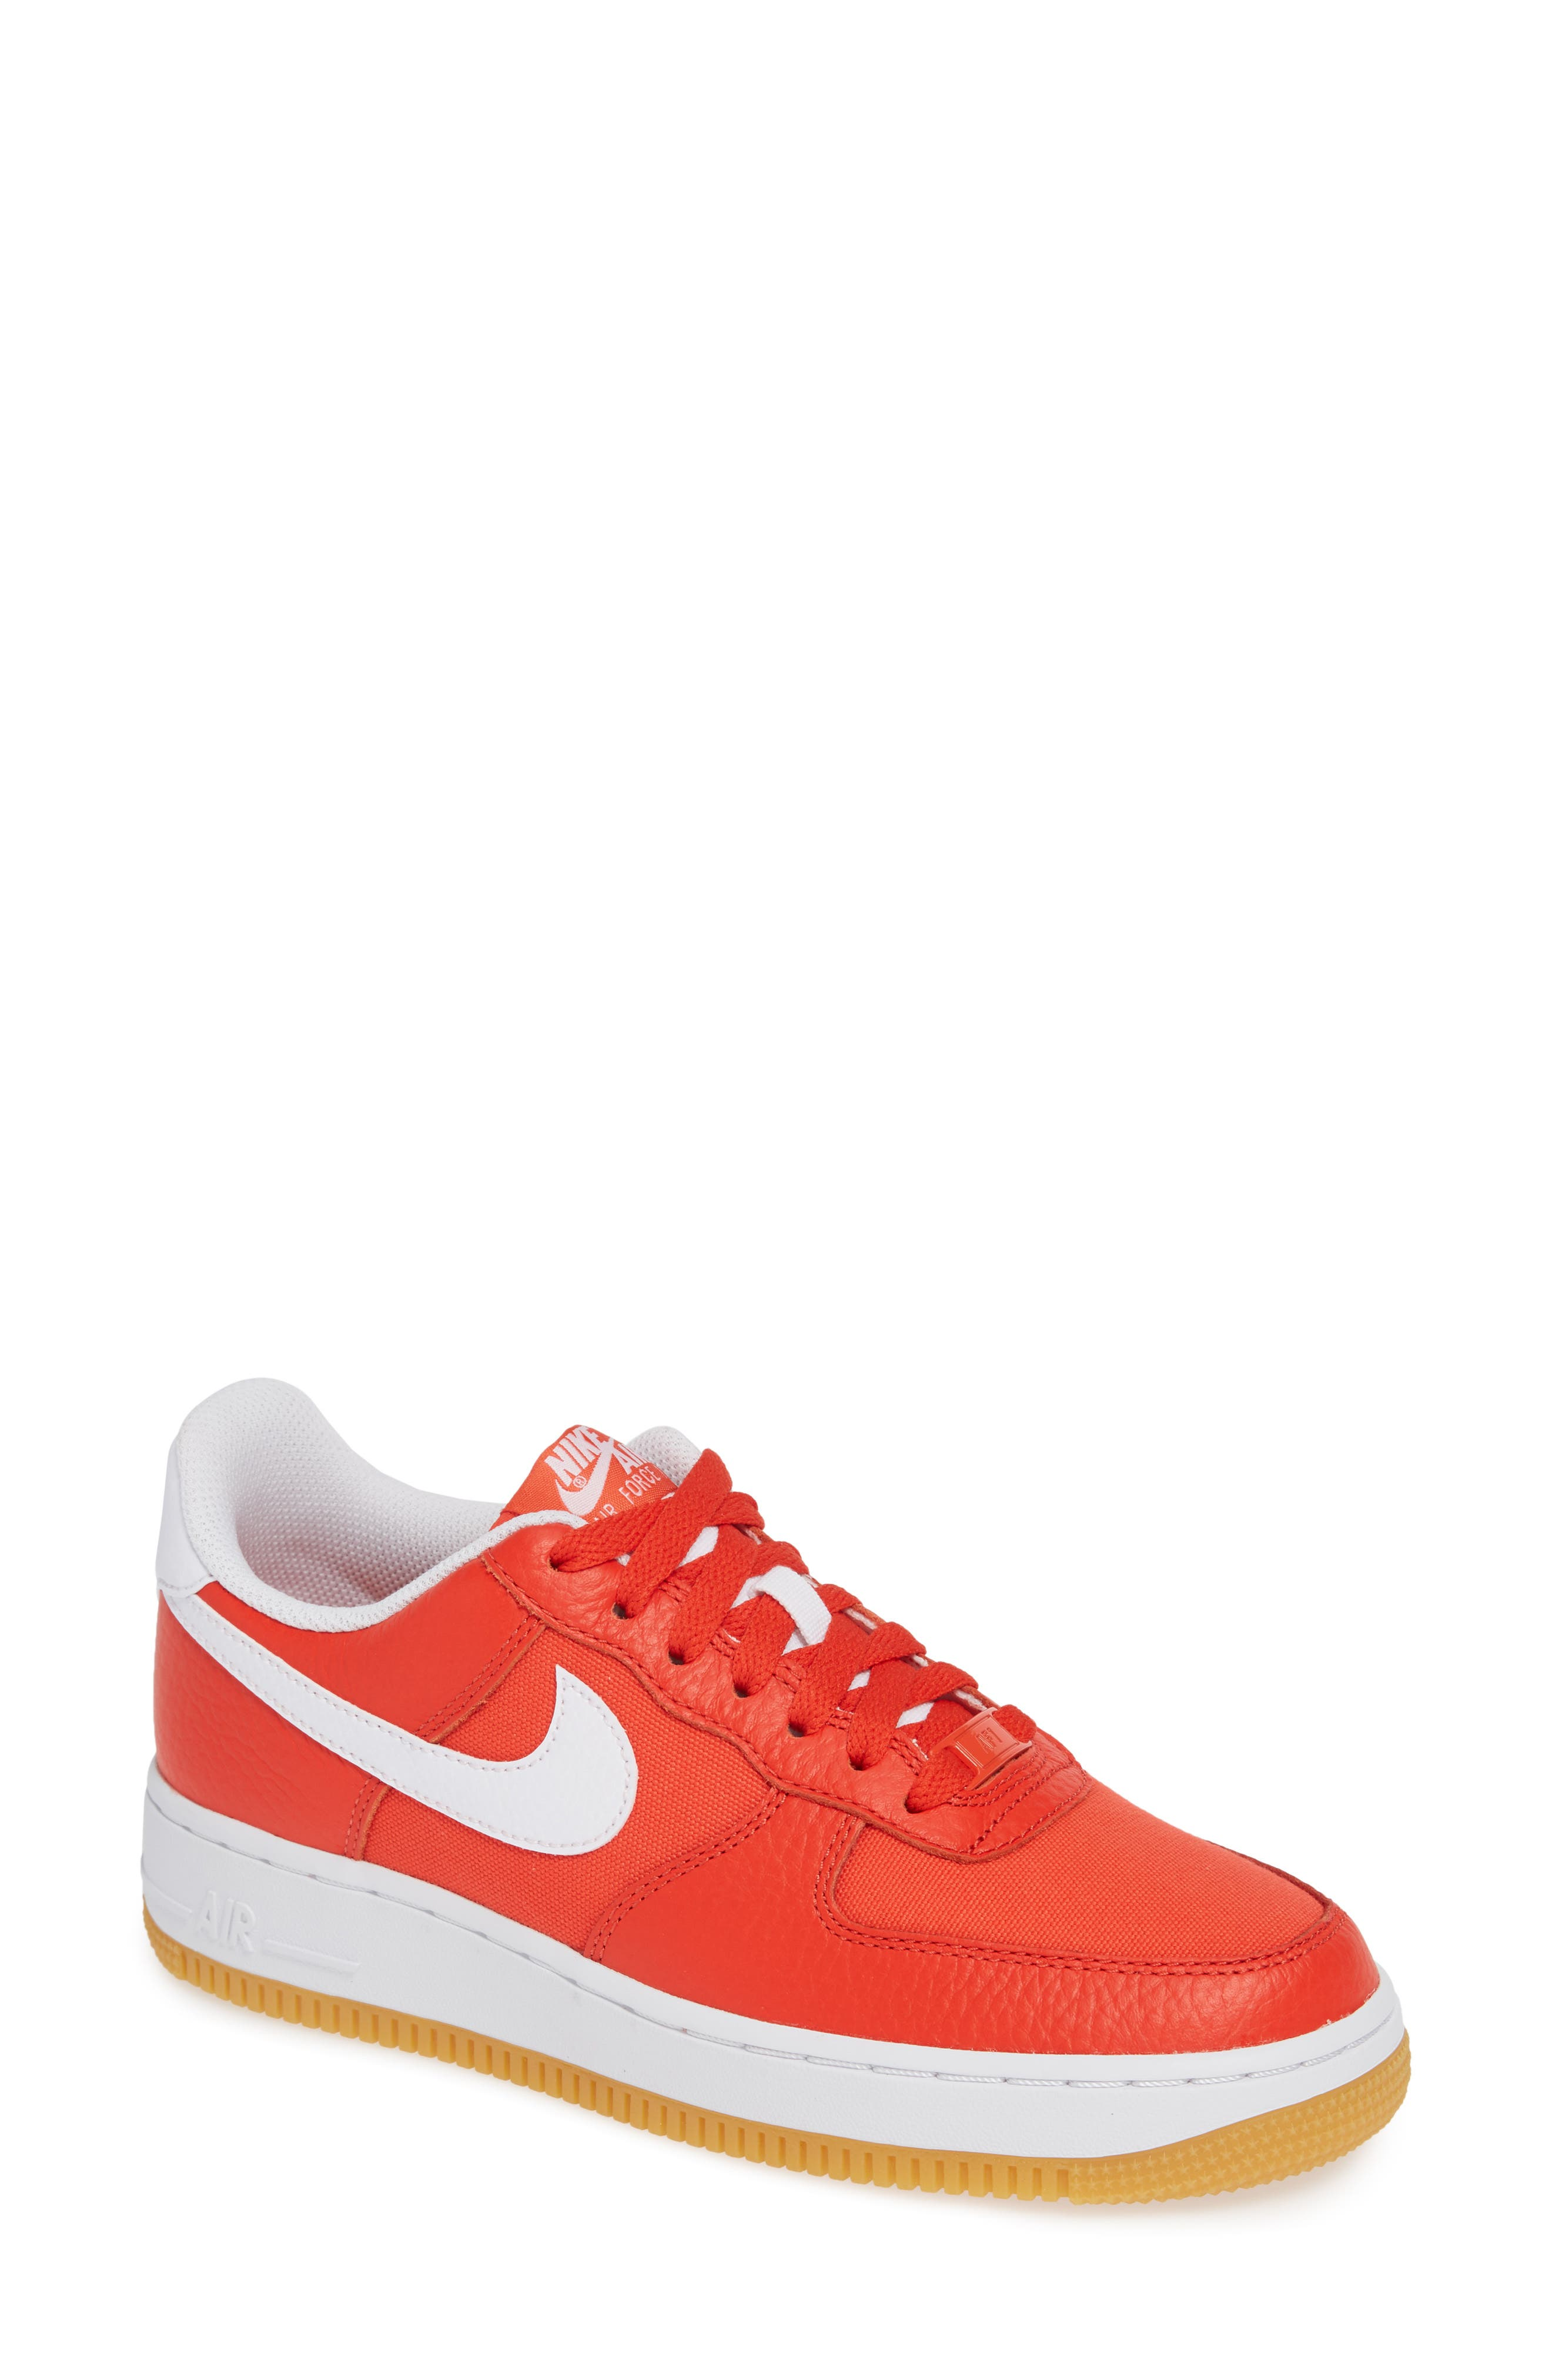 Air Force 1 '07 Premium Sneaker,                             Main thumbnail 1, color,                             RED/ WHITE/ LIGHT BROWN